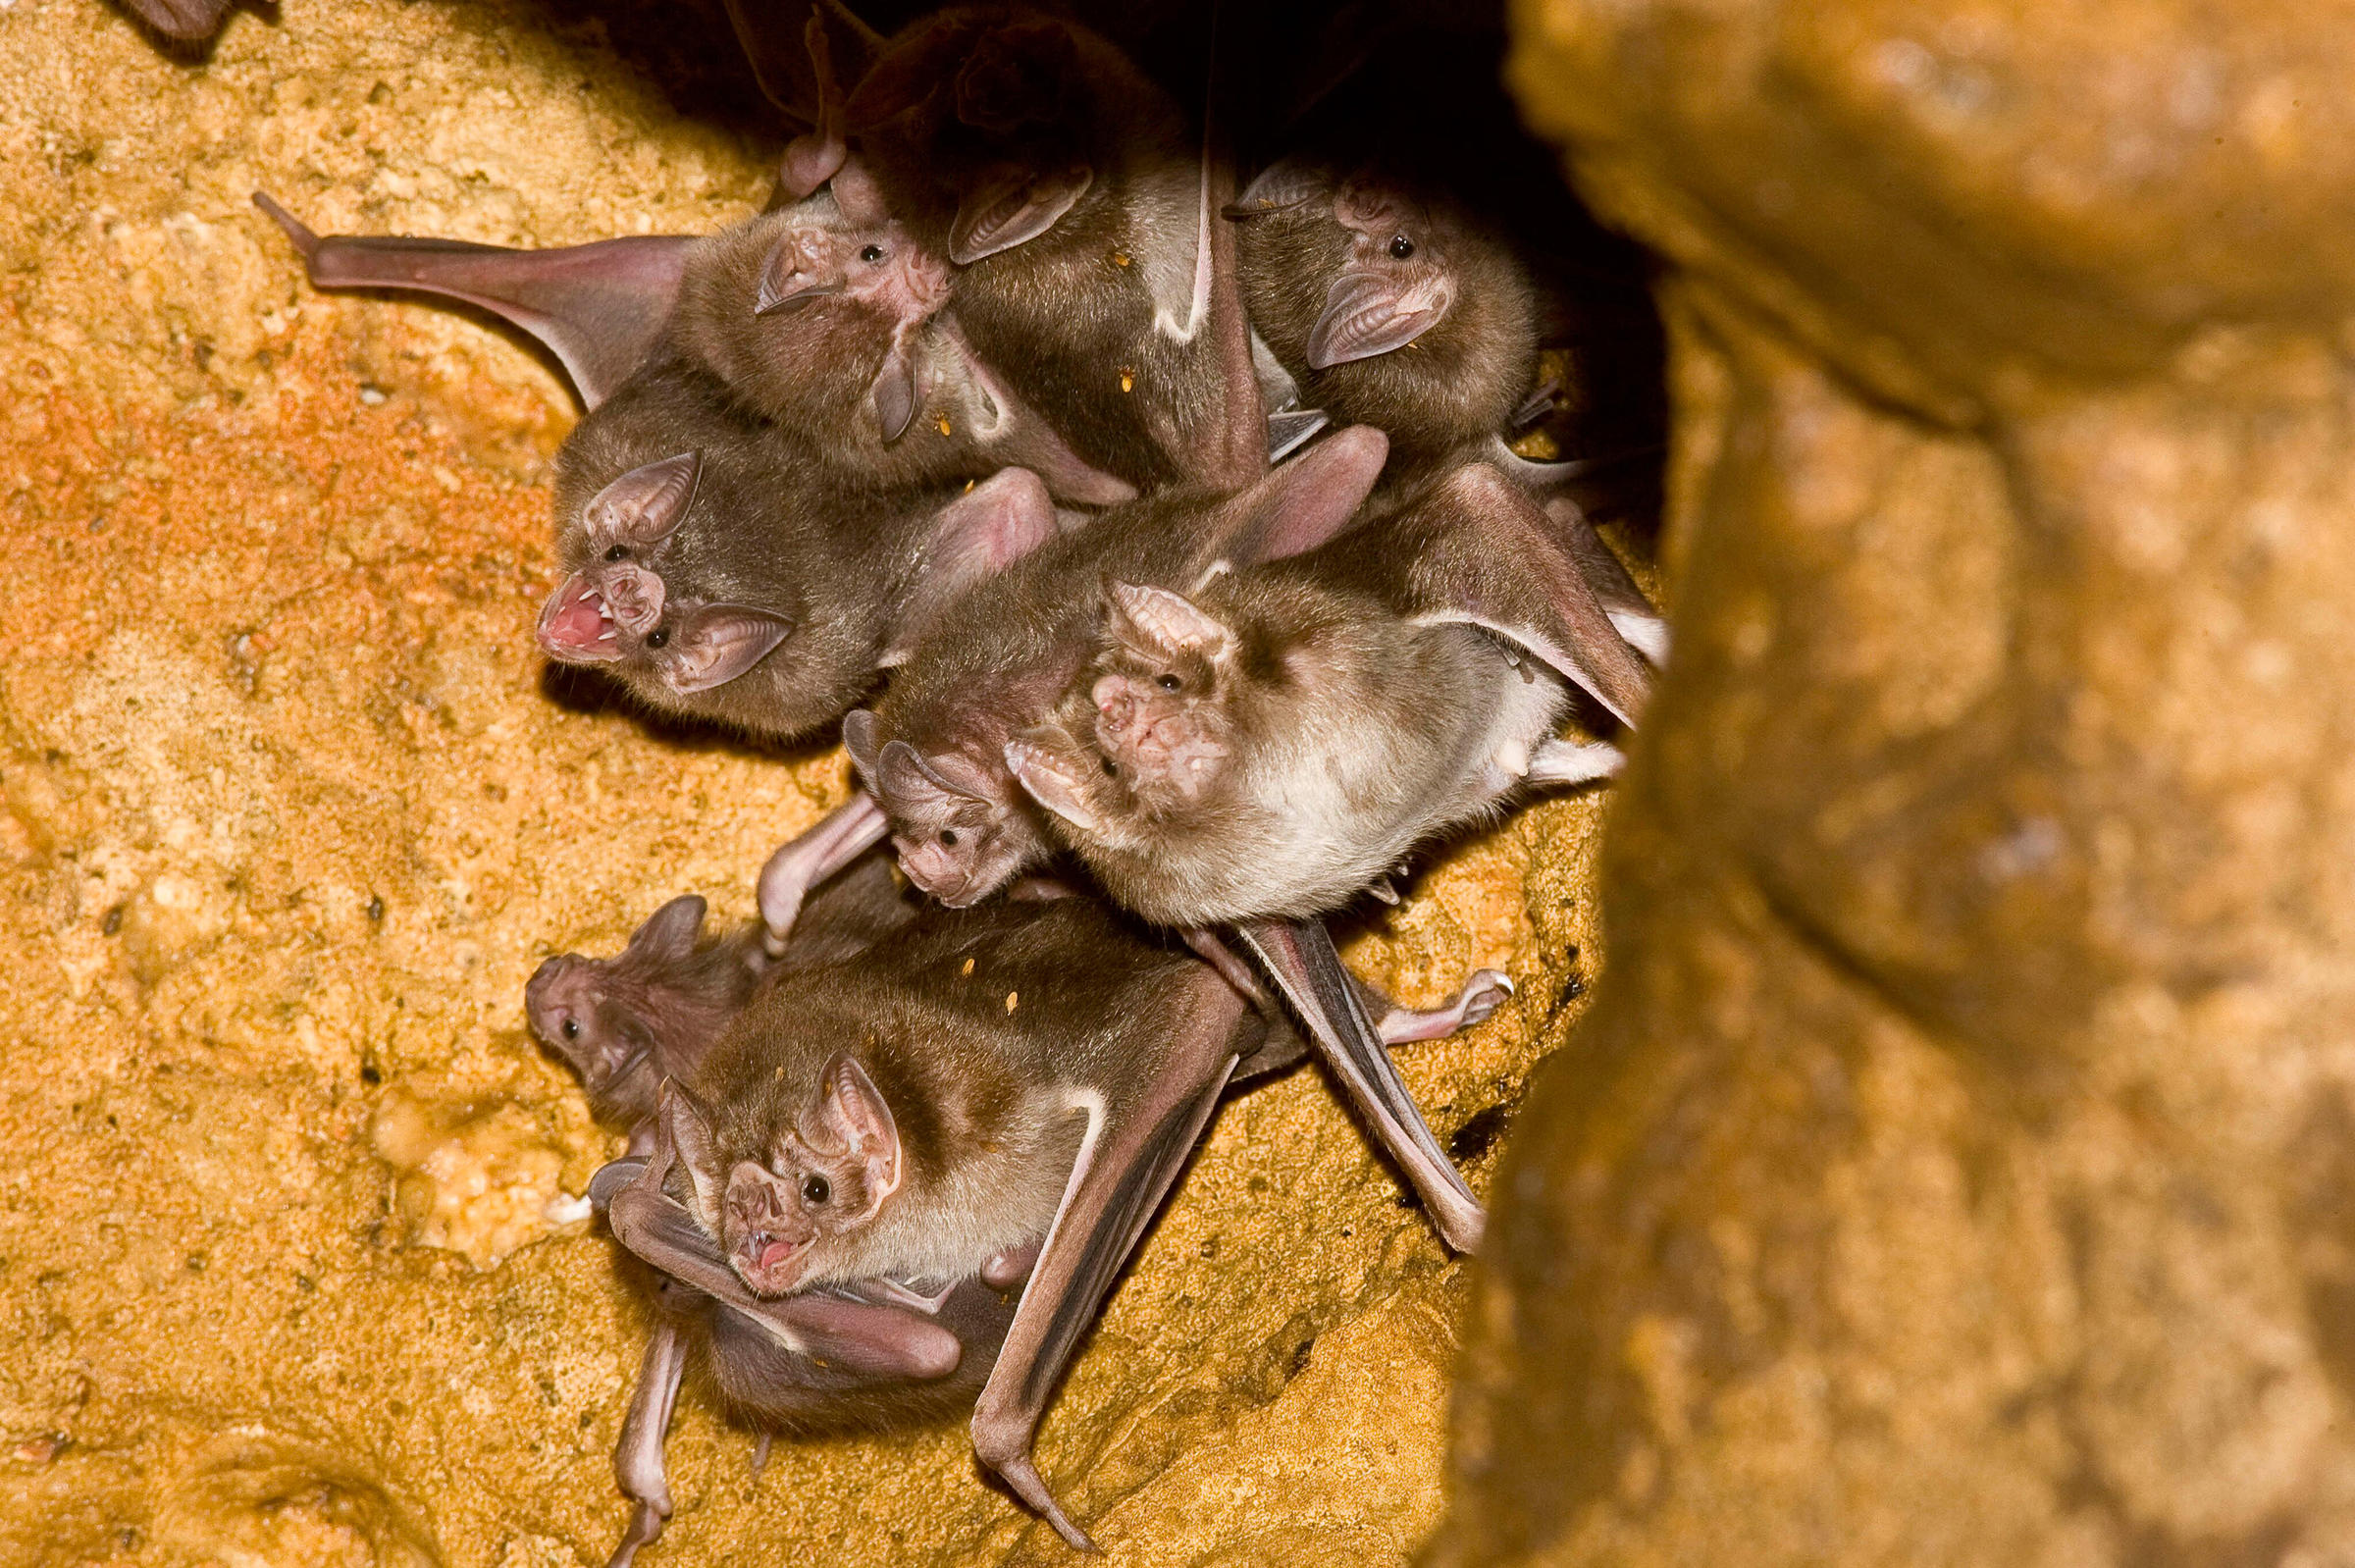 Vampire bats form close friendships and help each other, study finds